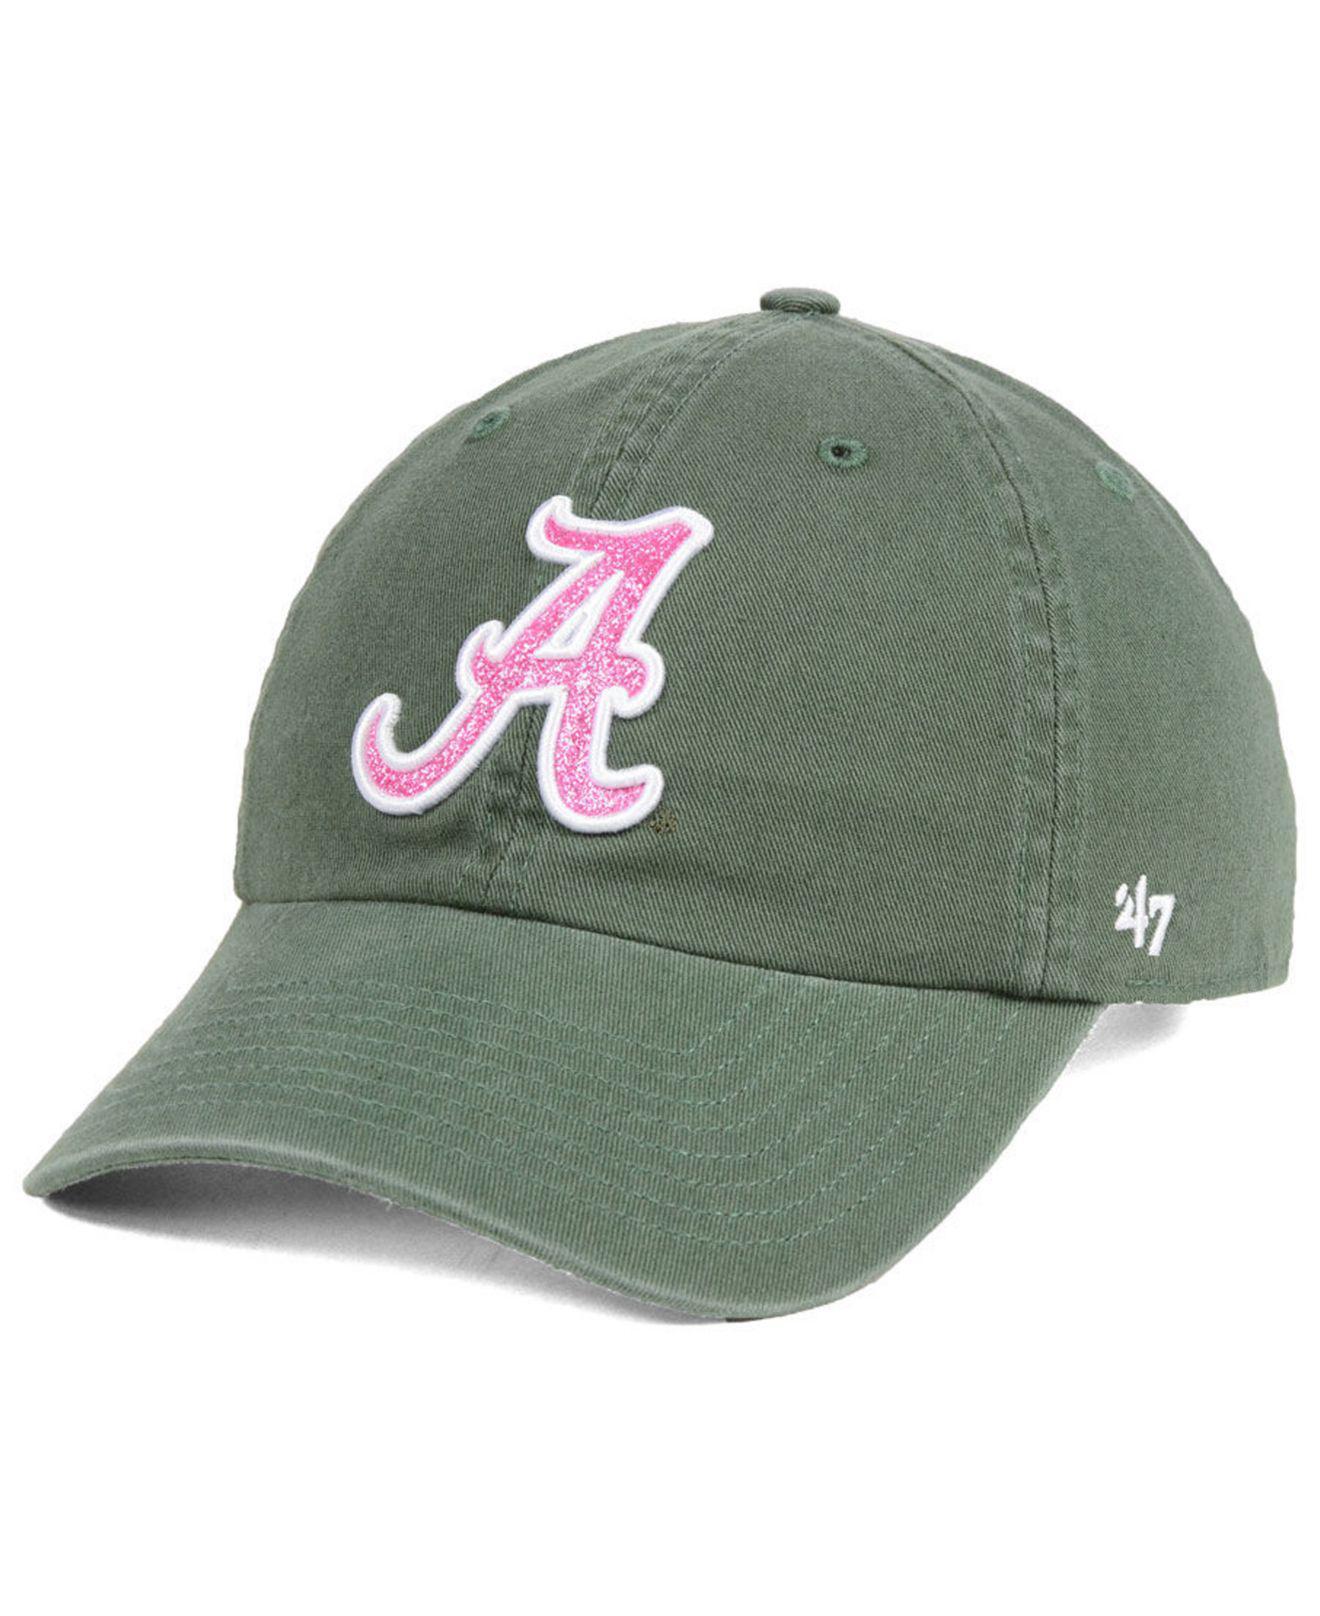 Lyst - 47 Brand Alabama Crimson Tide Glitta Clean Up Cap in Green d2effc7b4